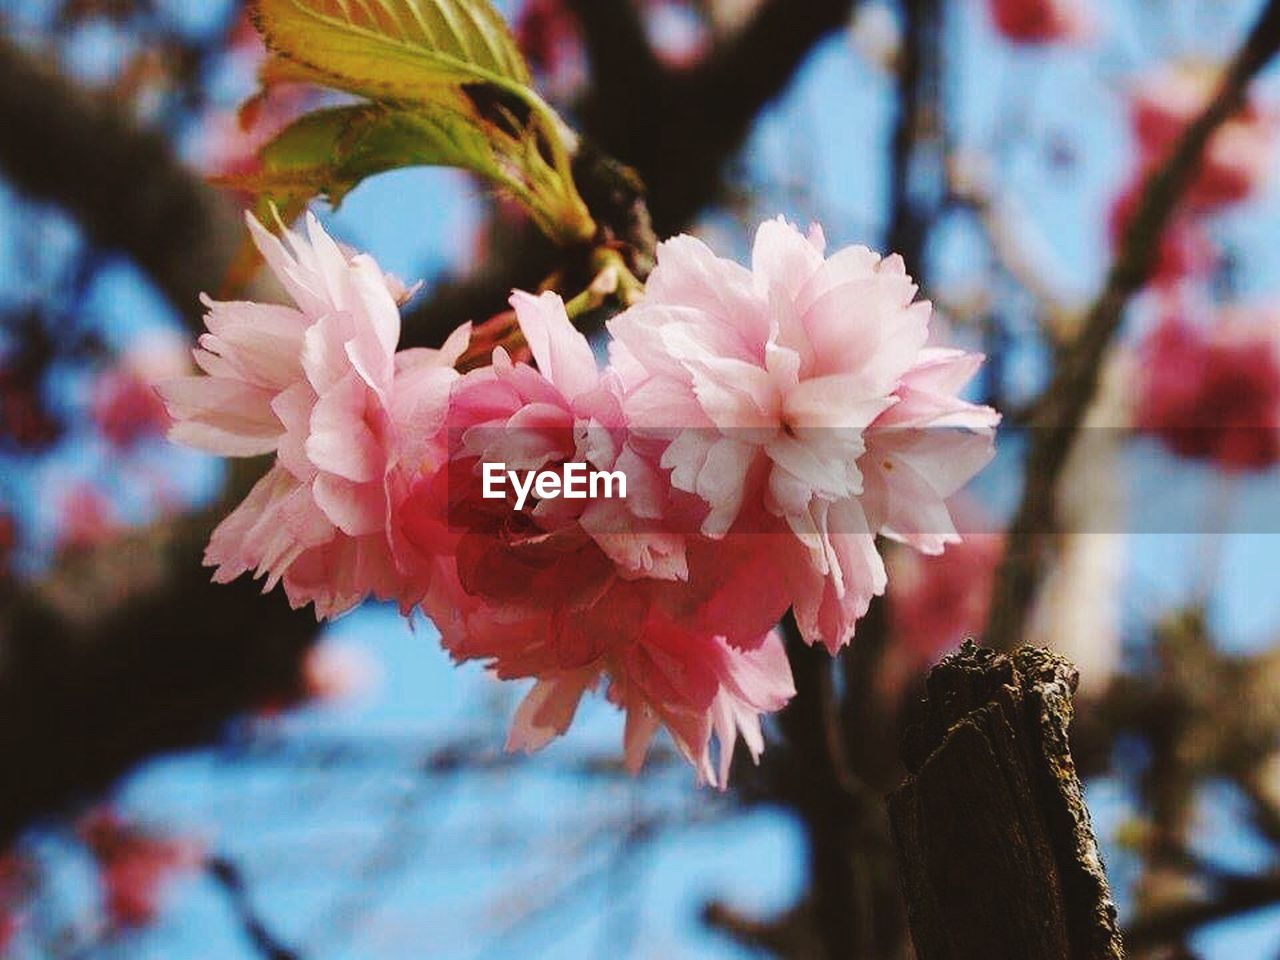 flower, flowering plant, plant, fragility, freshness, beauty in nature, vulnerability, growth, pink color, close-up, focus on foreground, tree, petal, nature, blossom, day, branch, no people, springtime, flower head, outdoors, cherry blossom, bunch of flowers, cherry tree